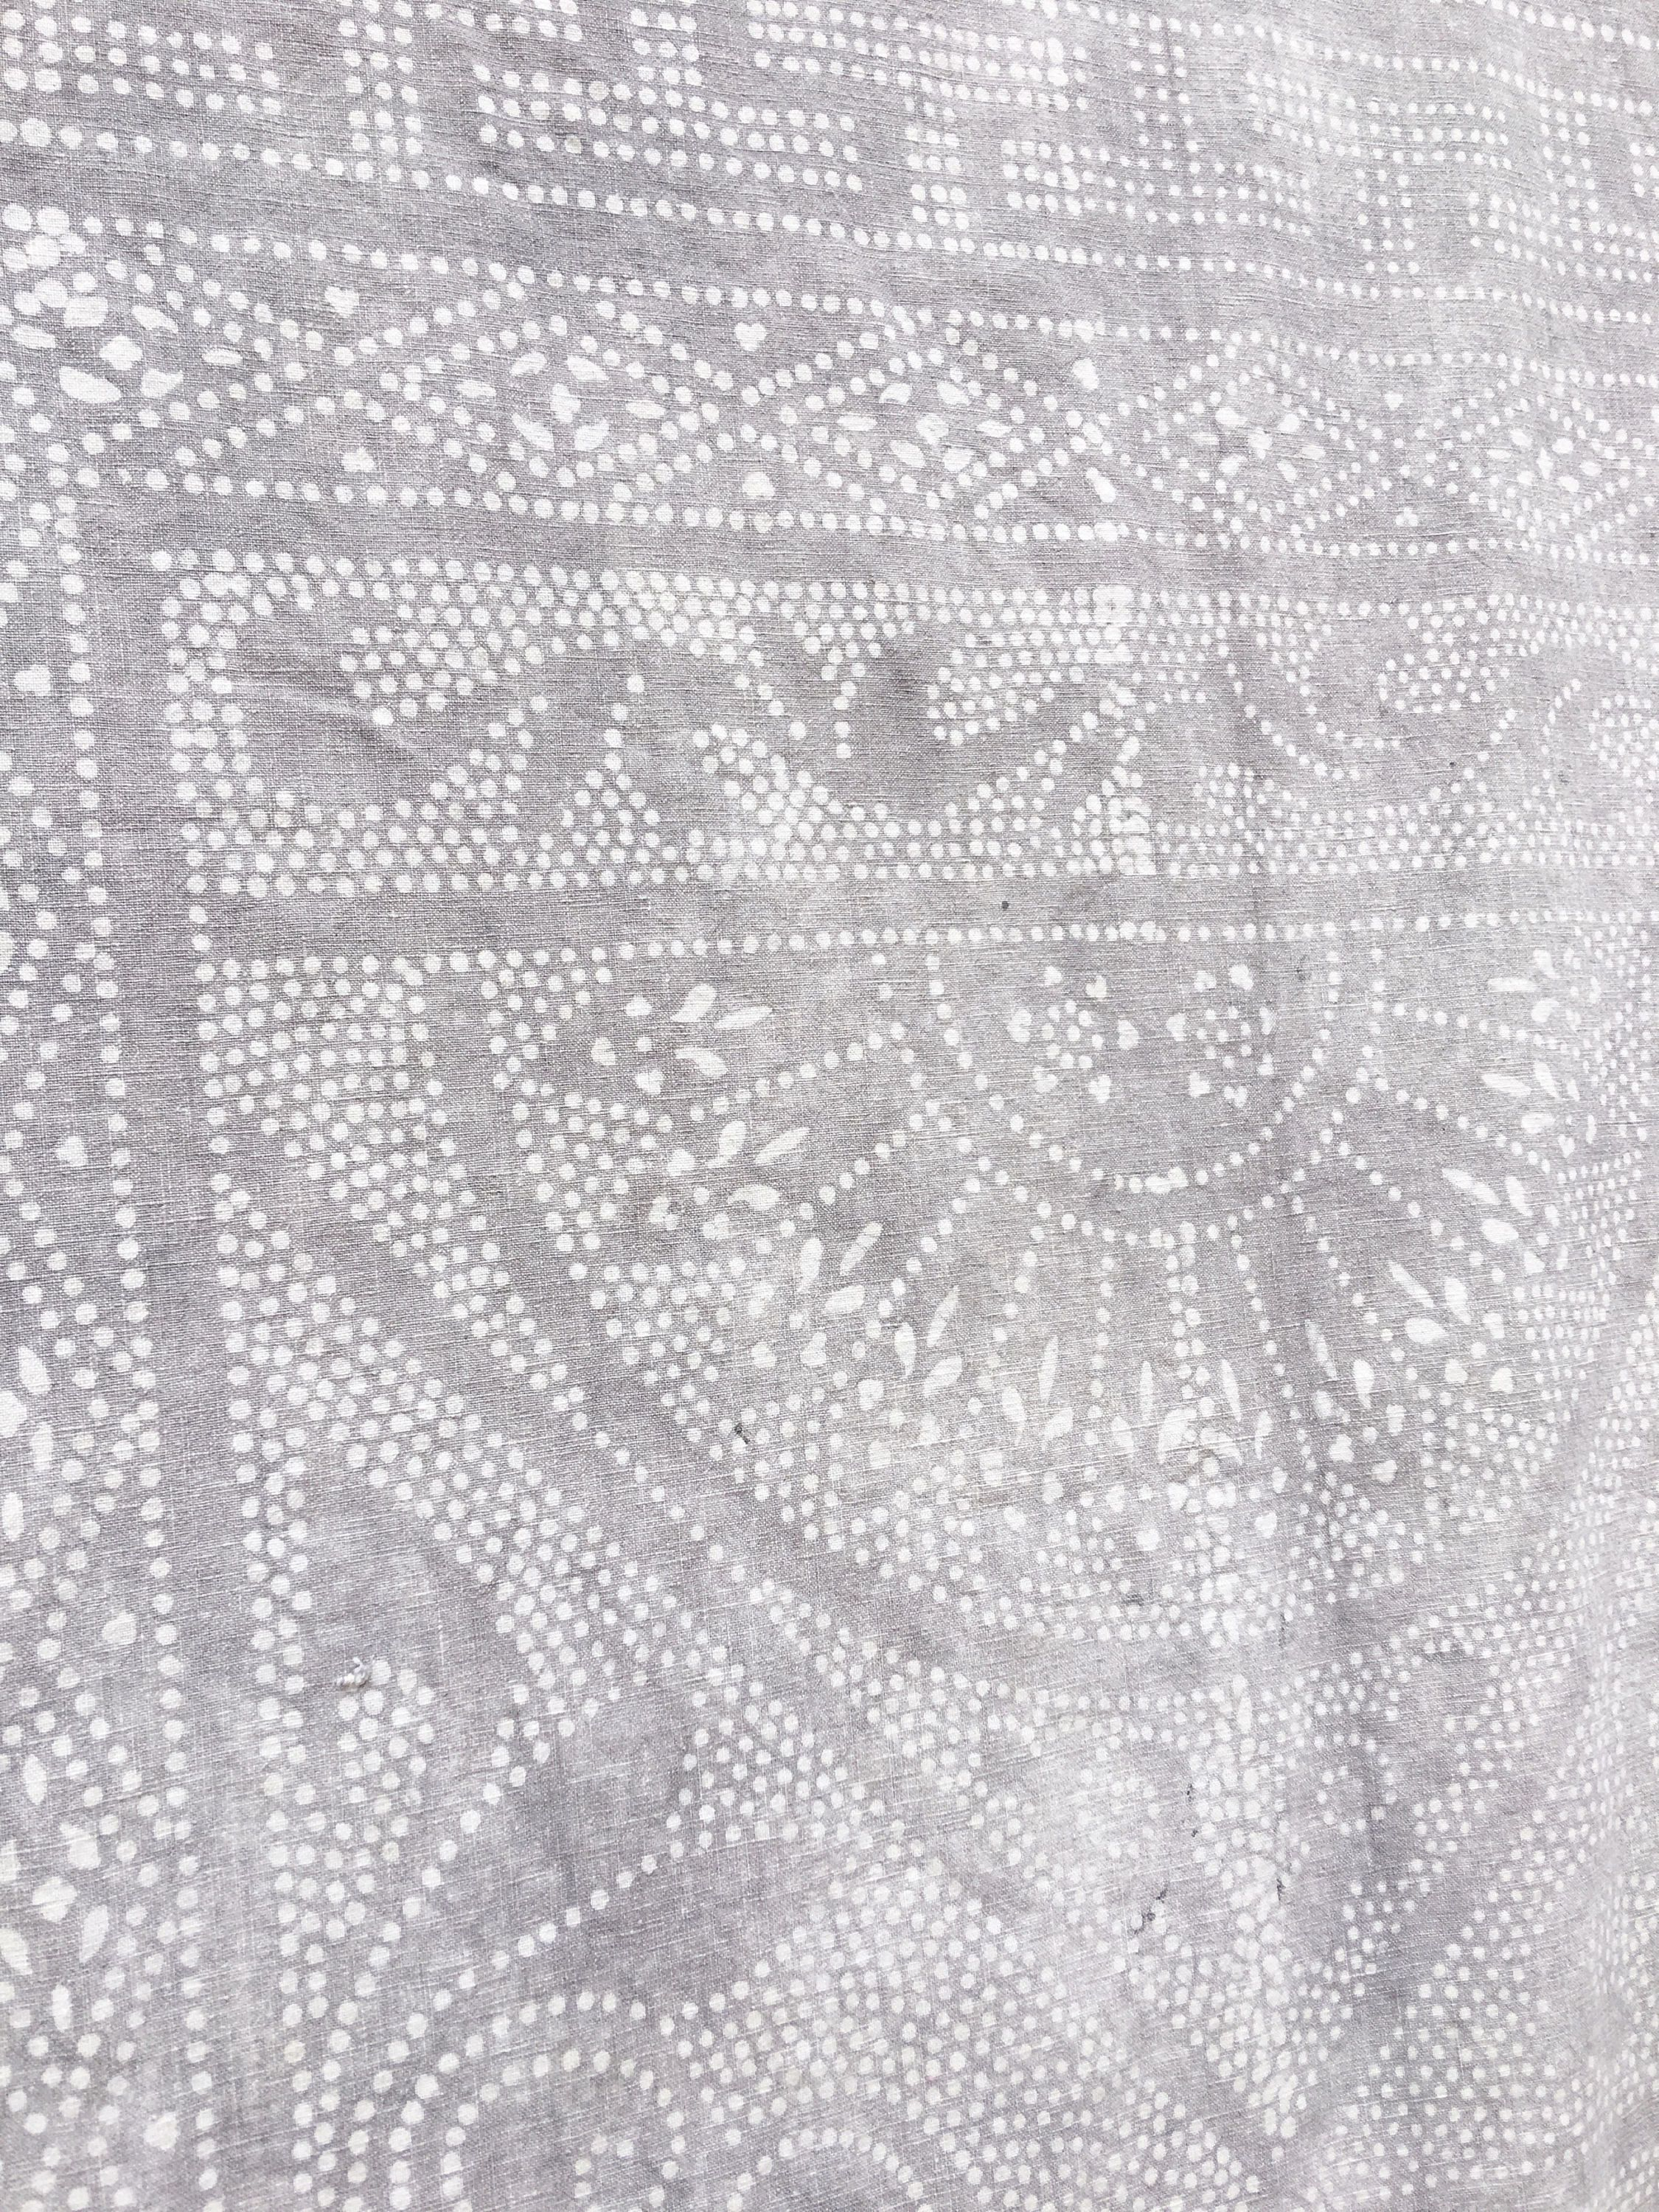 Gray silver Boho Fabric Vintage Chinese Batik Textile Boho Material Chinoiserie fabric one of a kind Asian indigo & shibori Pinterest